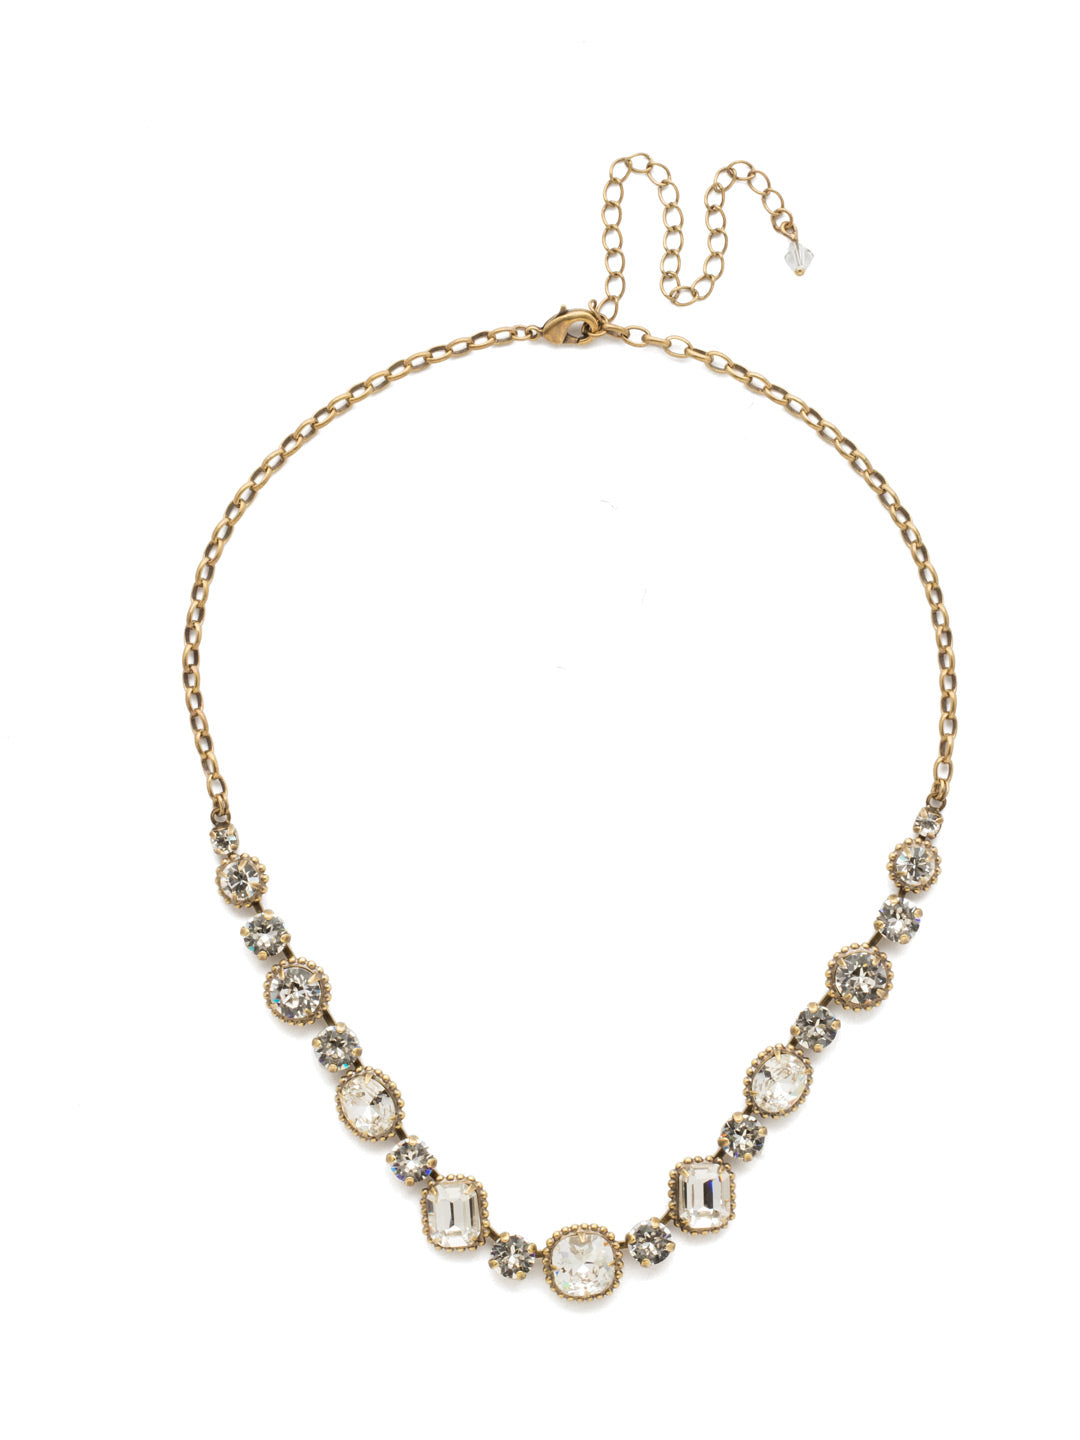 Embellished Elegance Necklace - NDK14AGCRY